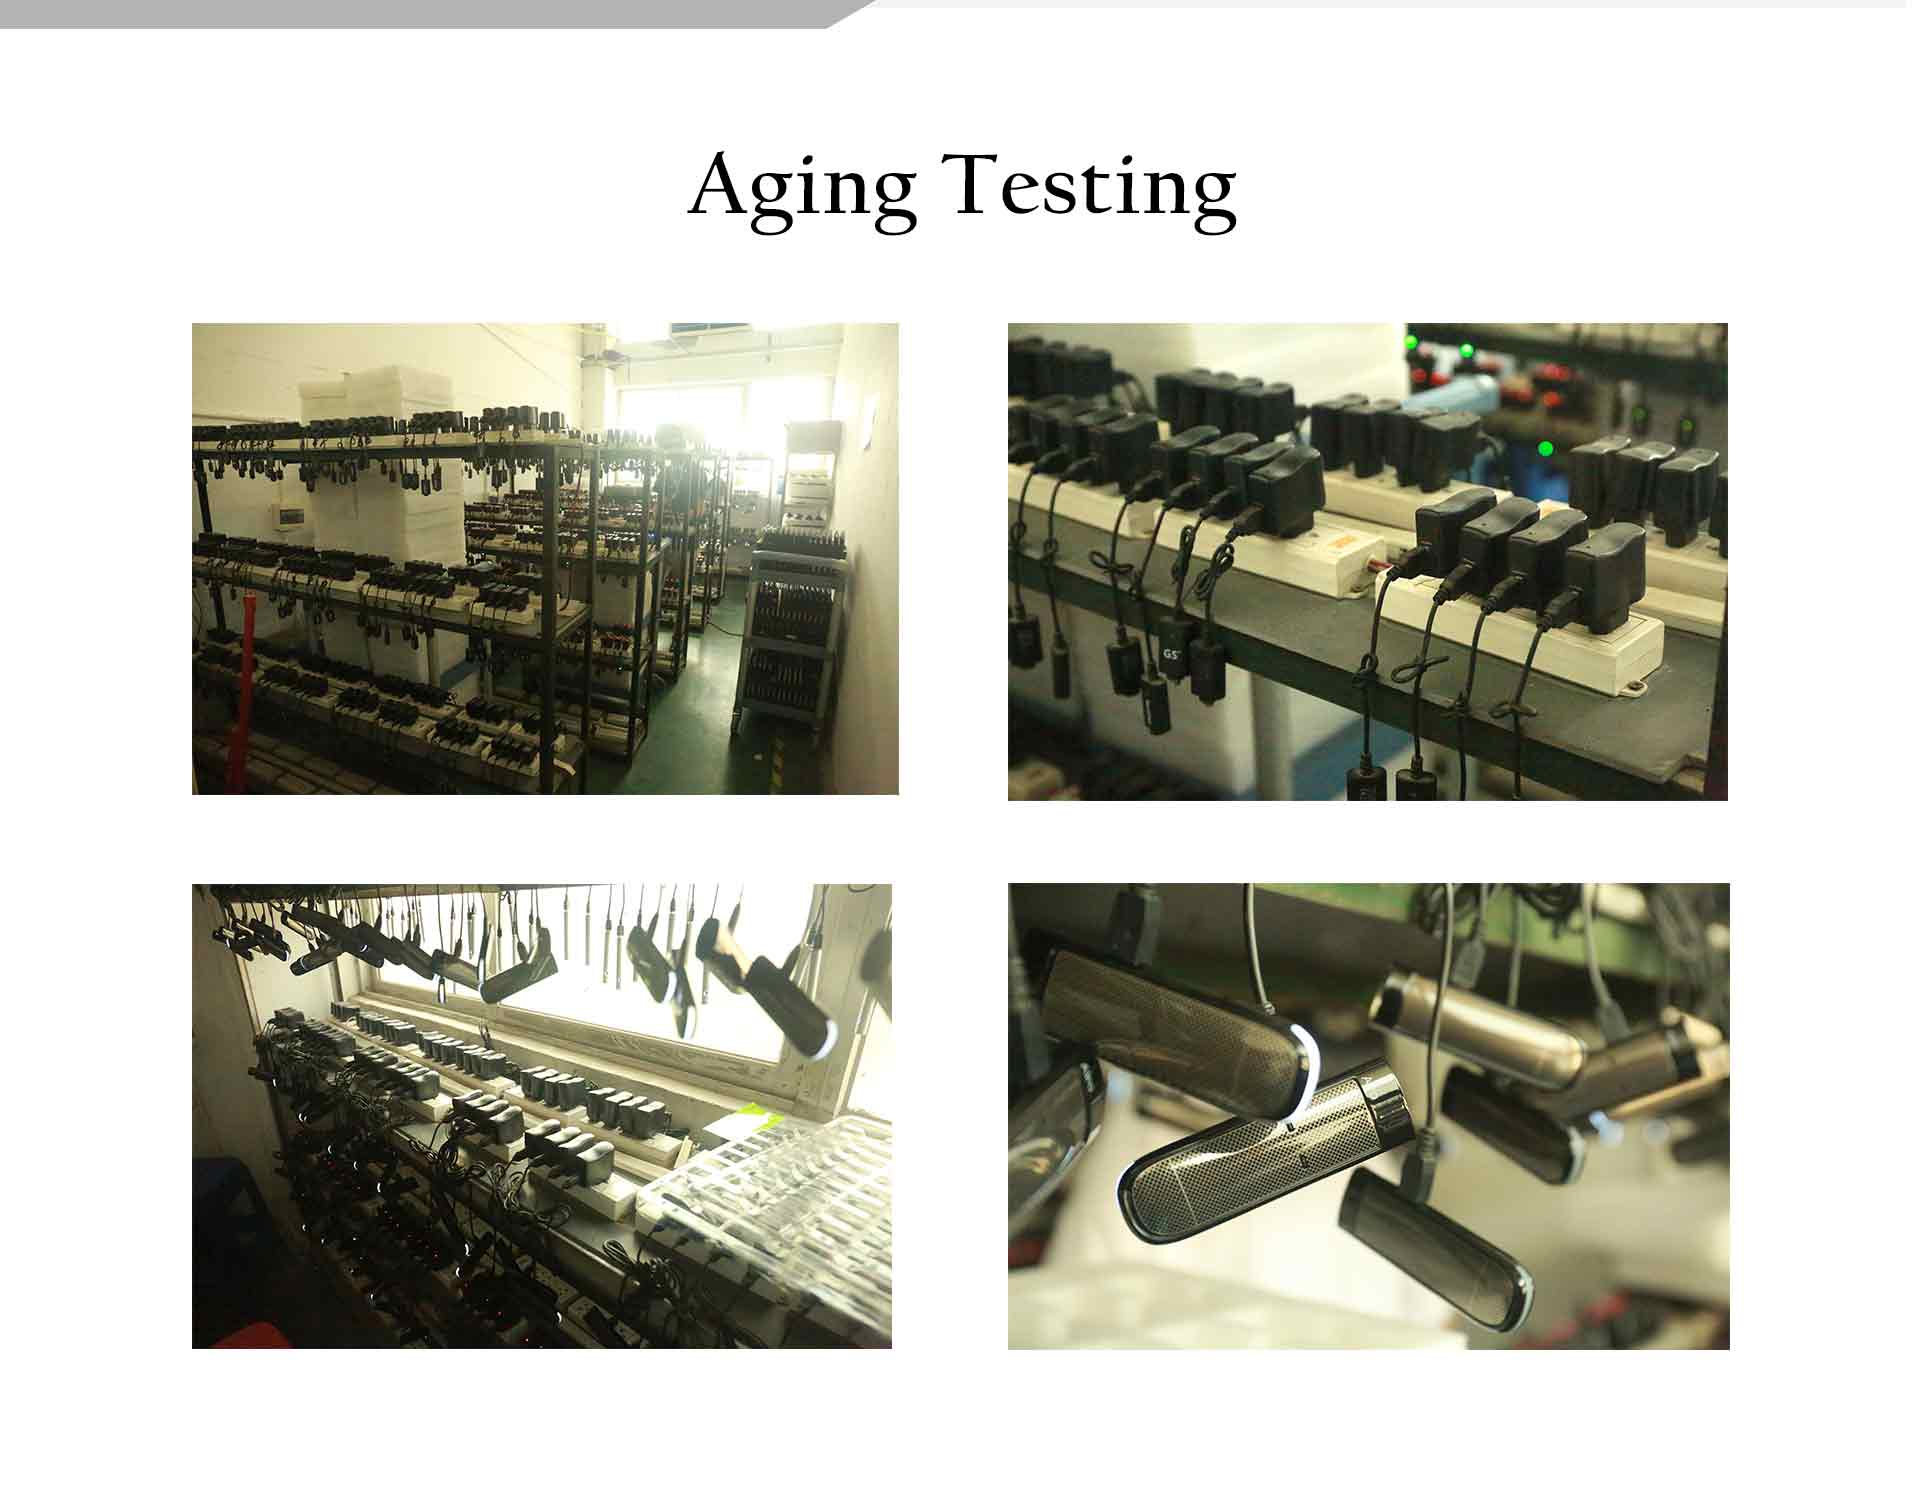 veiik product aging testing